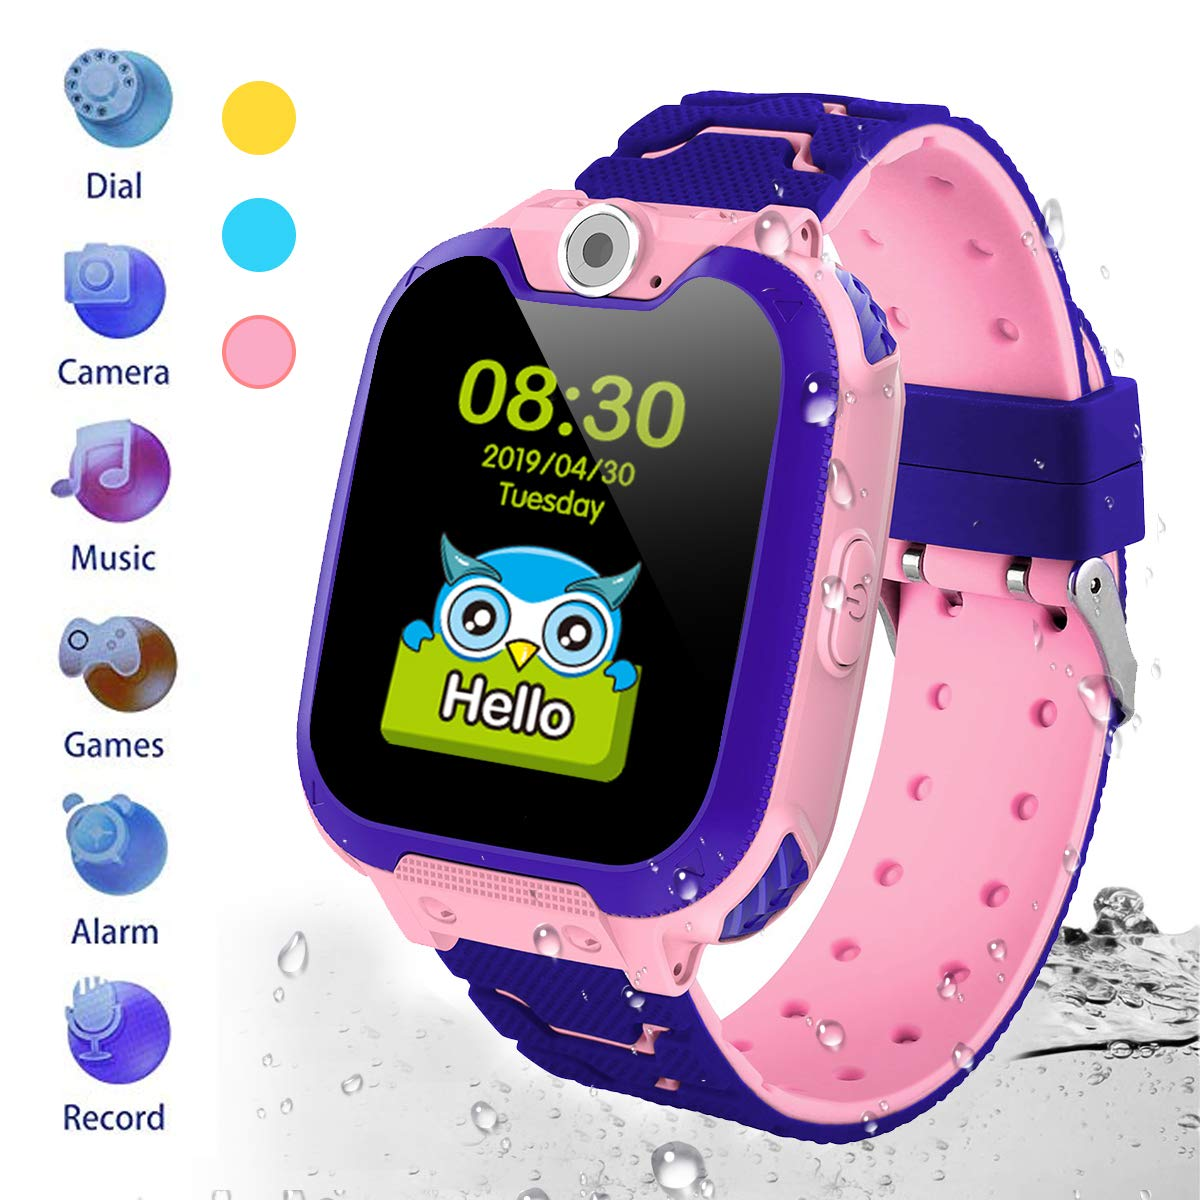 Kids Waterproof Smartwatch [SD Card Included],1.54 inch Colorful Touch Screen Smartwatch for Children with Quick Dial, Camera and Music ...